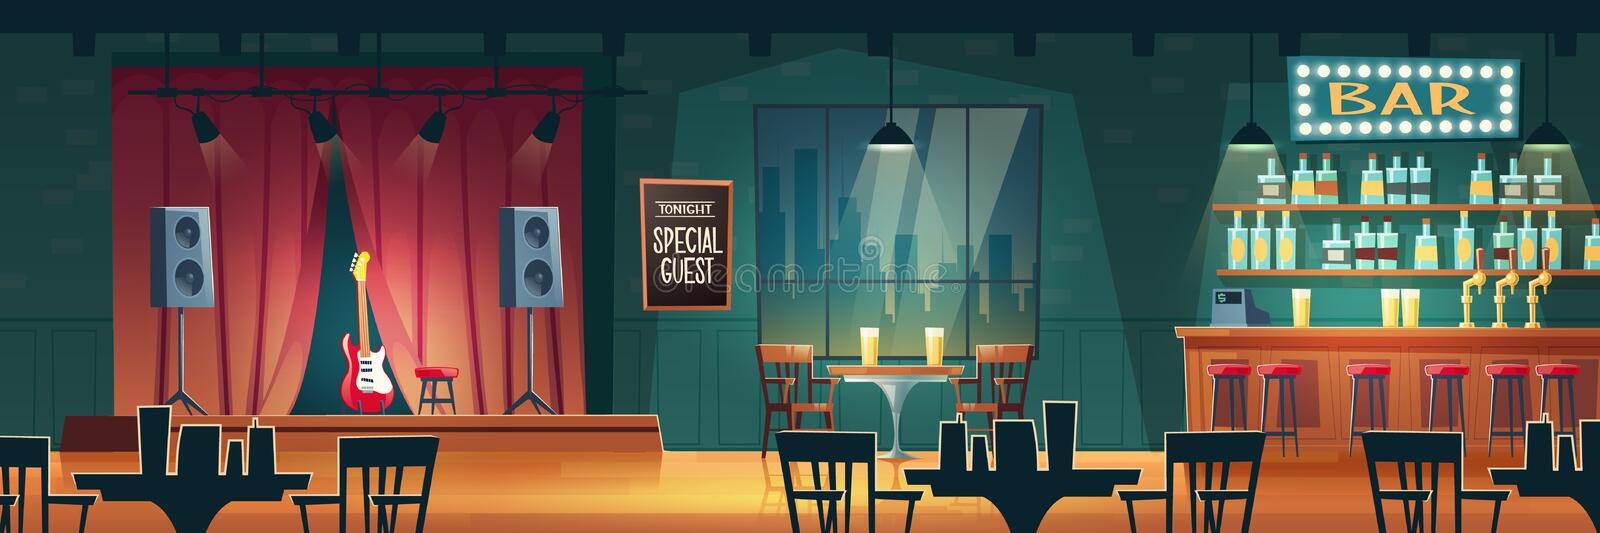 Bar with live music cartoon vector interior vector illustration